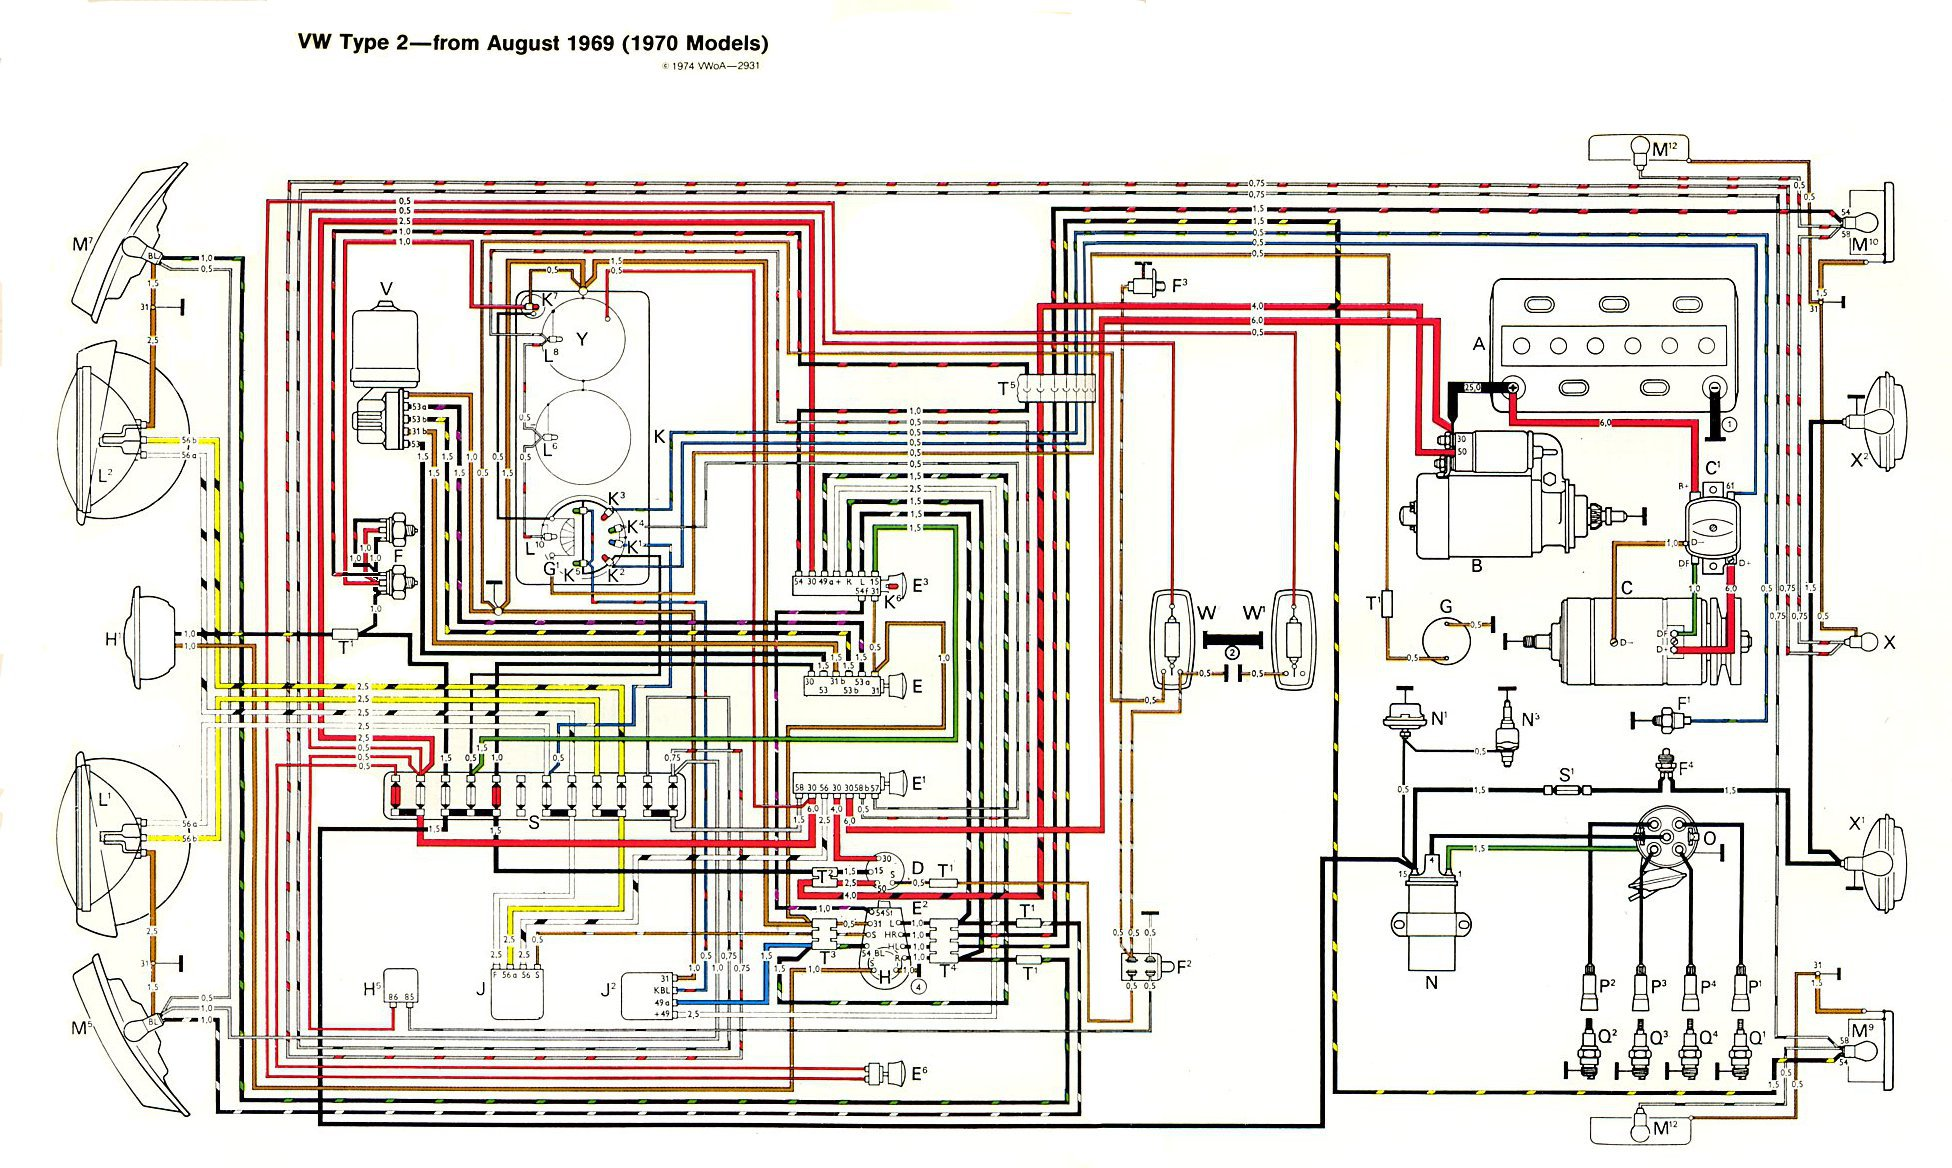 baybus_70 thesamba com type 2 wiring diagrams Wiring Harness Diagram at crackthecode.co